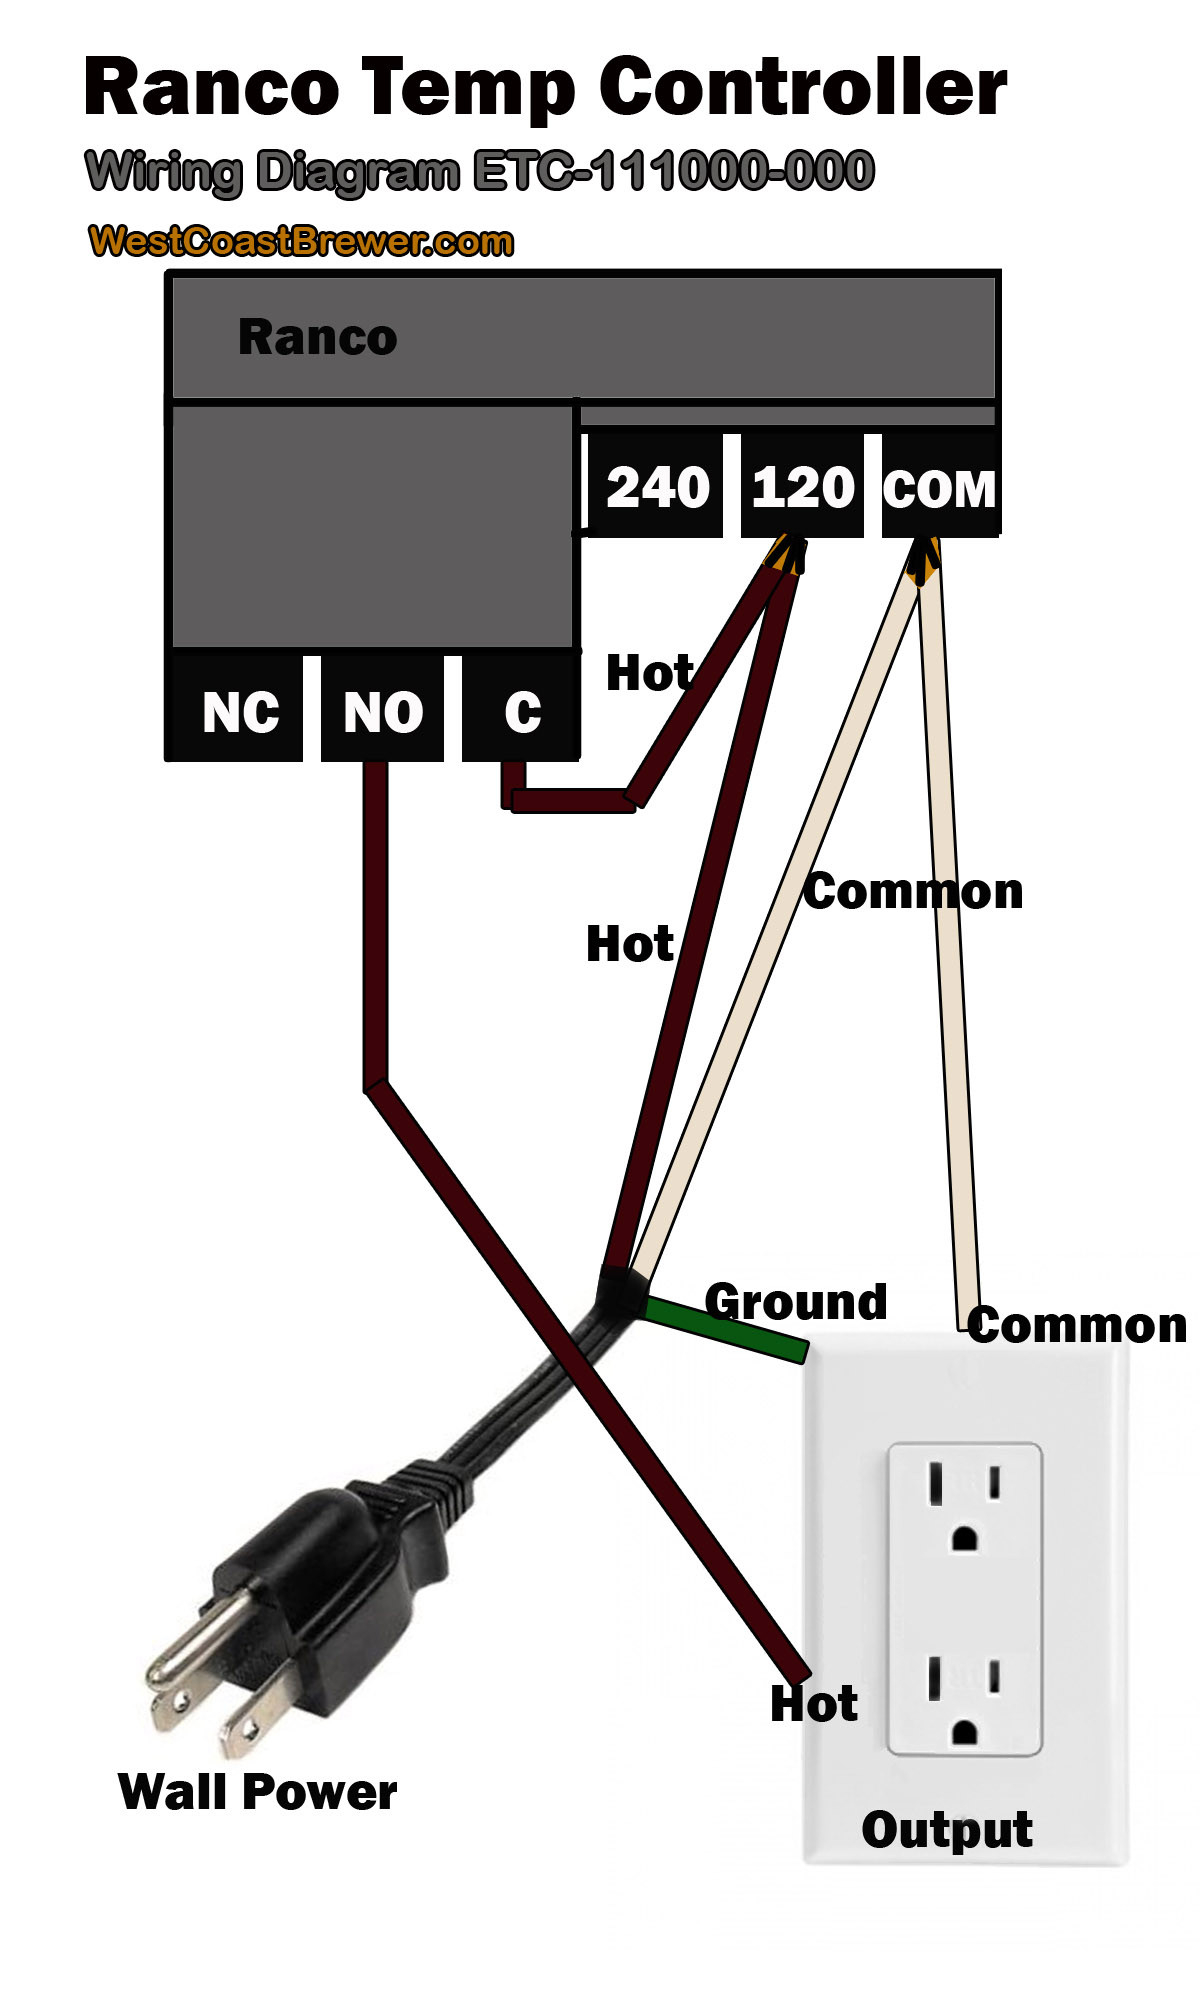 ranco temperature controller wiring diagram Download-How To Wire A Ranco Digital Temperature Controller 120v Best Ideas que Wiring 8-f